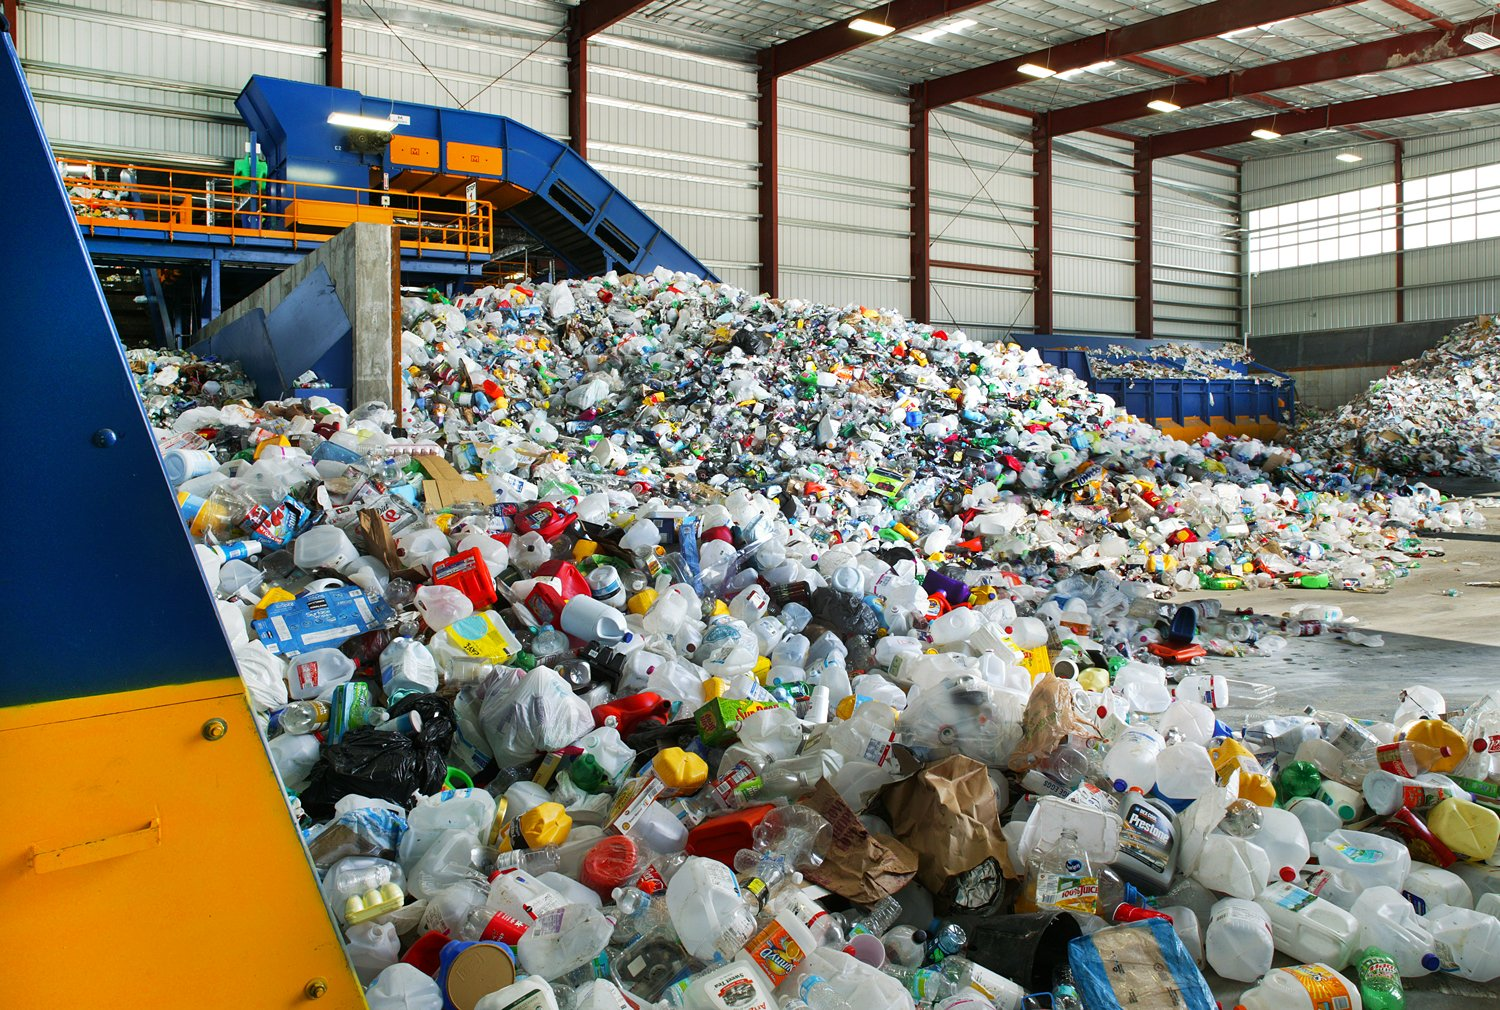 xMachinex-sorting-systems-plastic-recycling.jpg.pagespeed.ic.3rwFNN5E7-